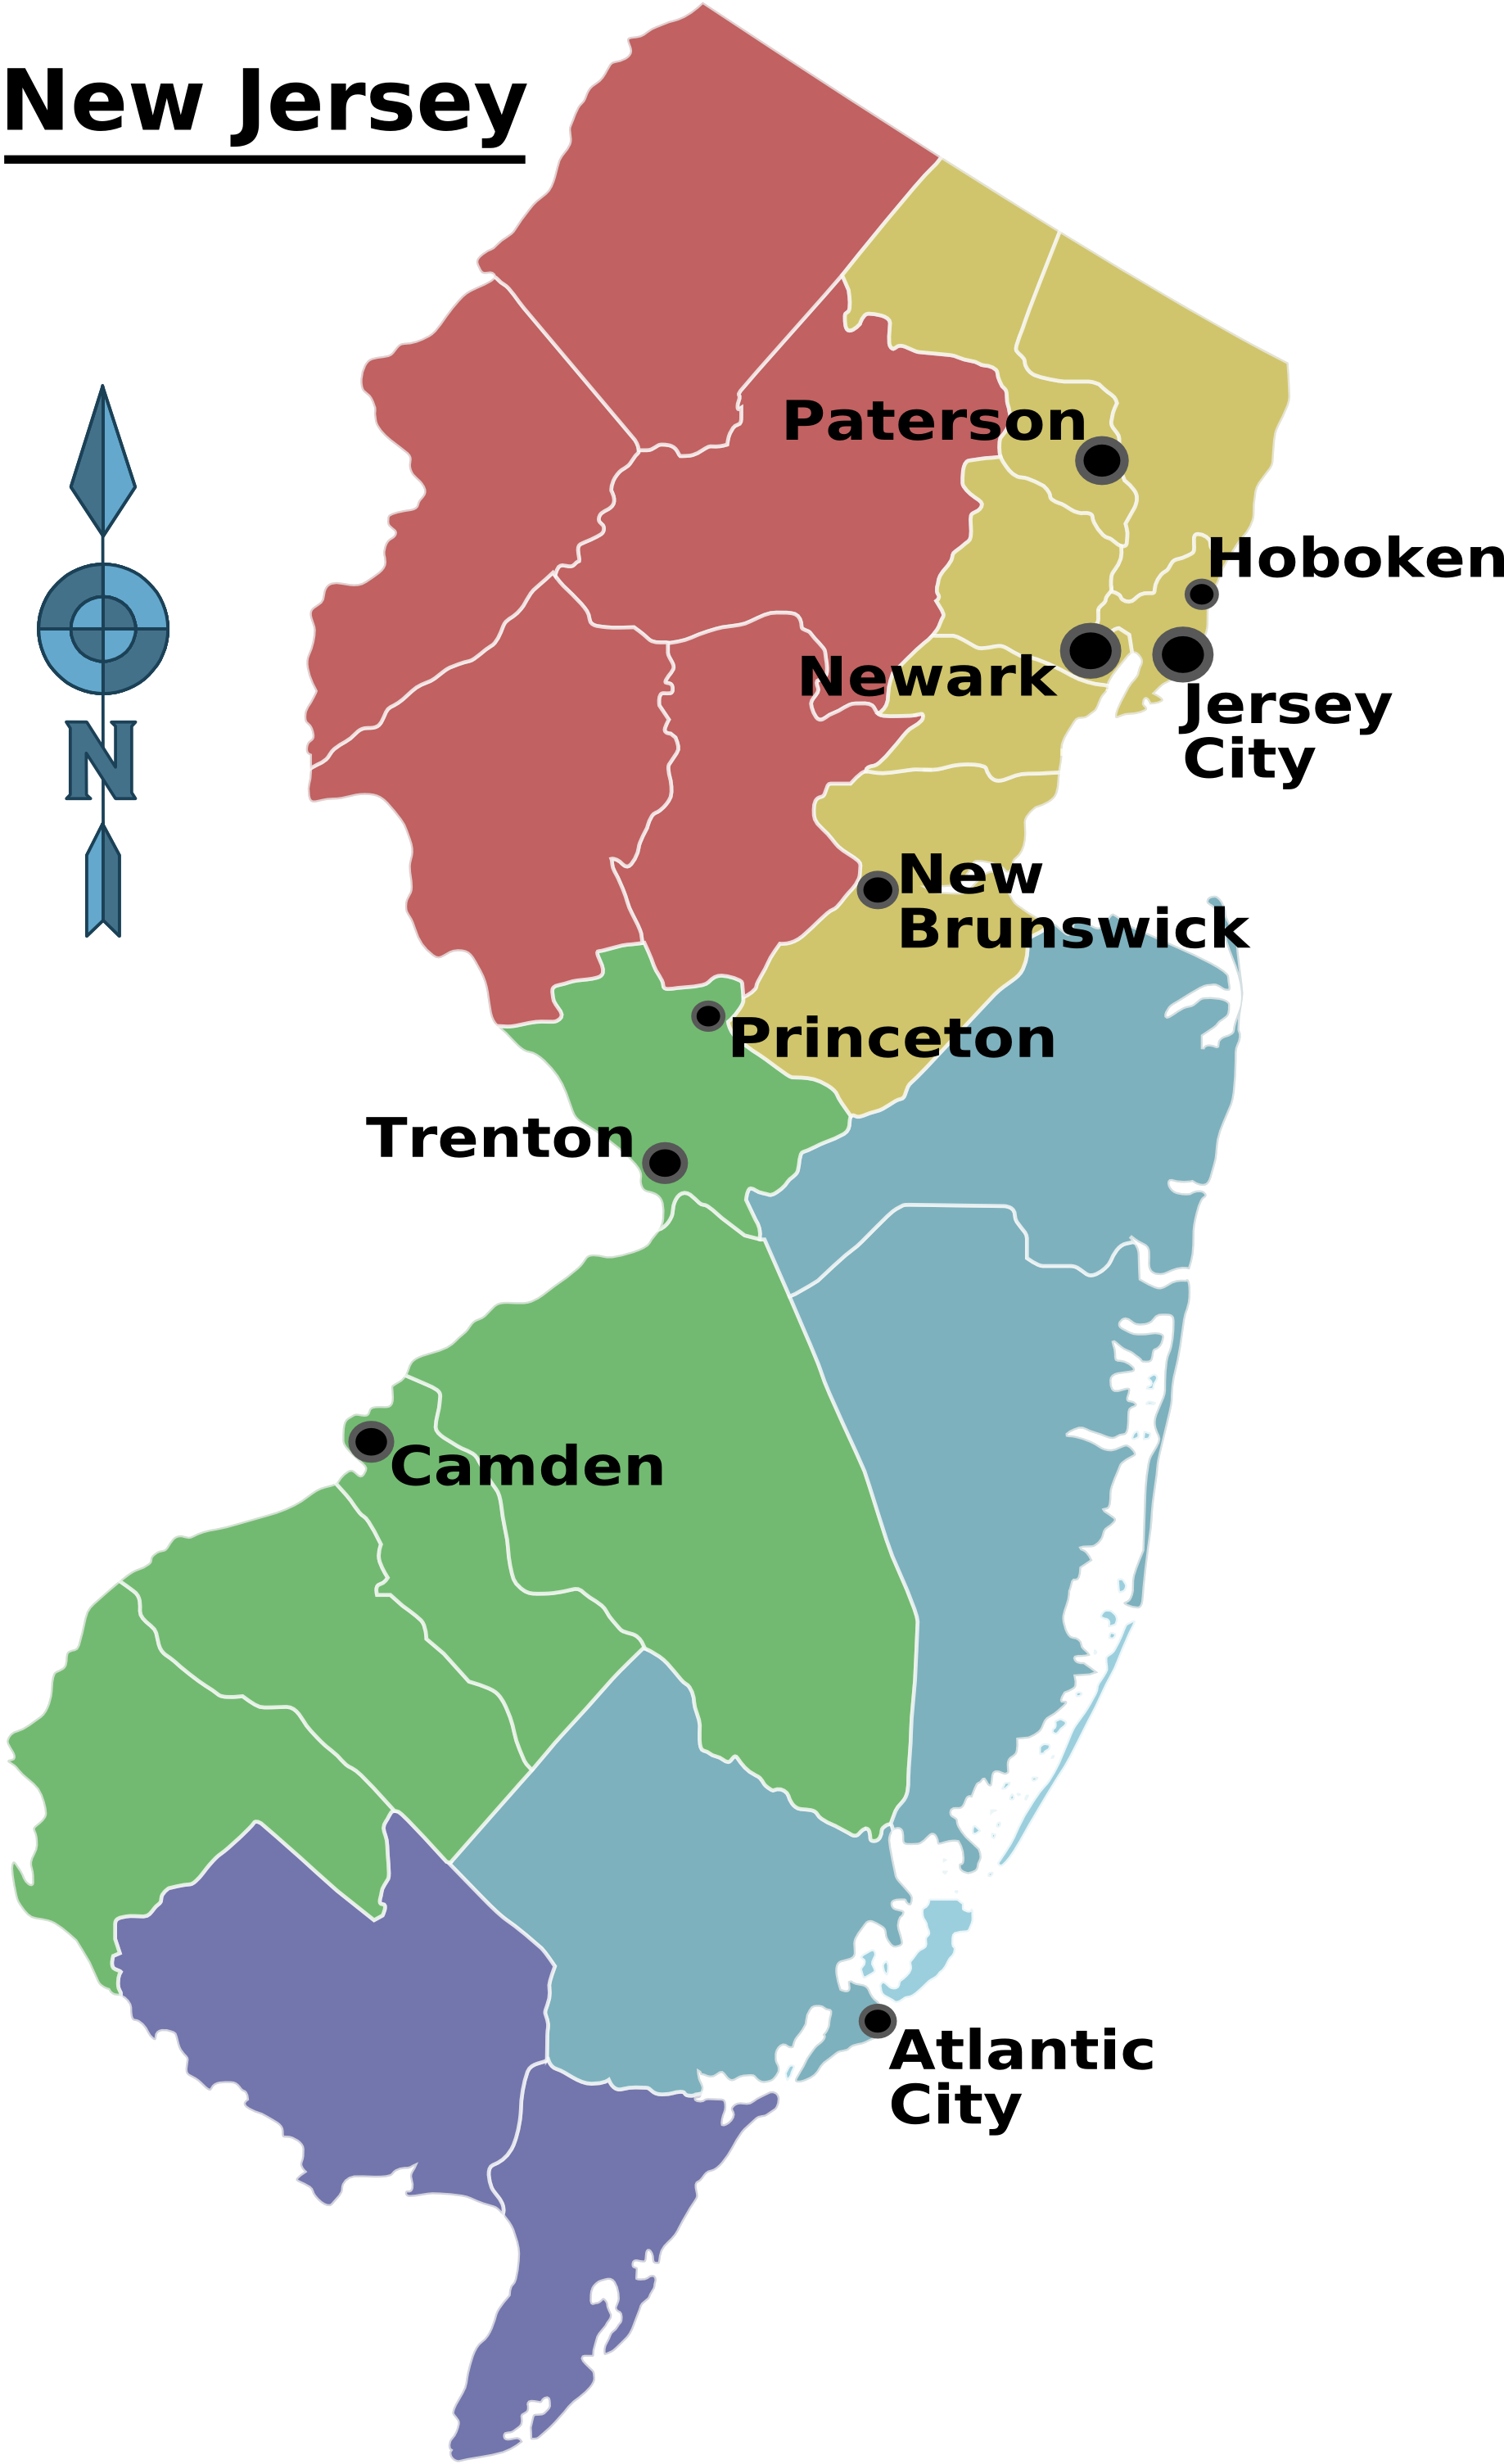 regions of usa map with File New Jersey Regions Map on Japan furthermore Tennessee Geographical Maps besides File New Jersey regions map furthermore Svg Se likewise Apac.